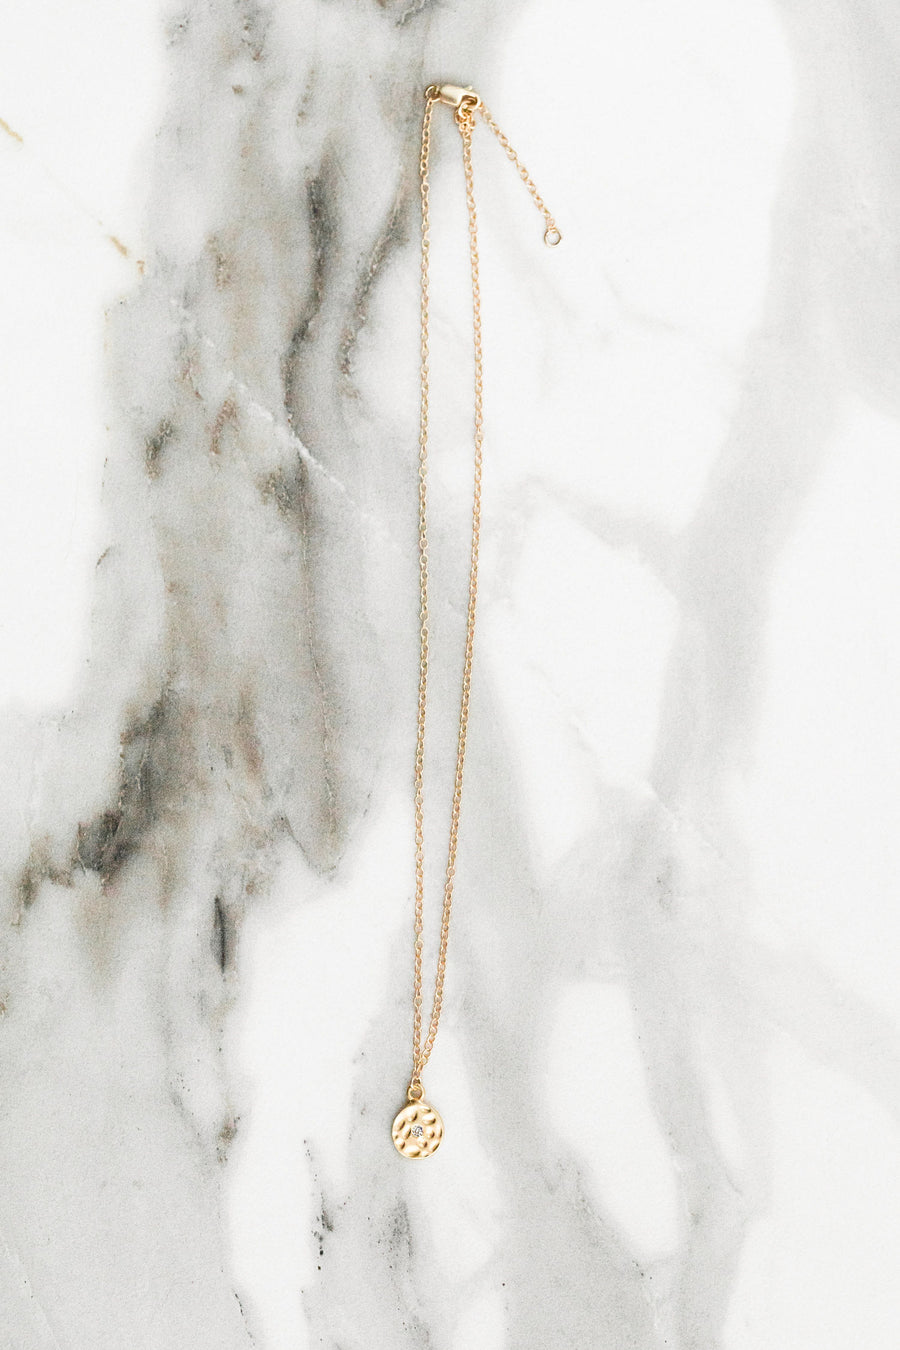 Find the perfect necklace you're looking for from Charme Silkiner! This beautiful 14K Gold Filled Chain Necklace with a hammered disc and delicate crystals is perfection. Great for layering or wearing alone the Tawney Necklace is the perfect piece of unique jewelry that everyone should own.